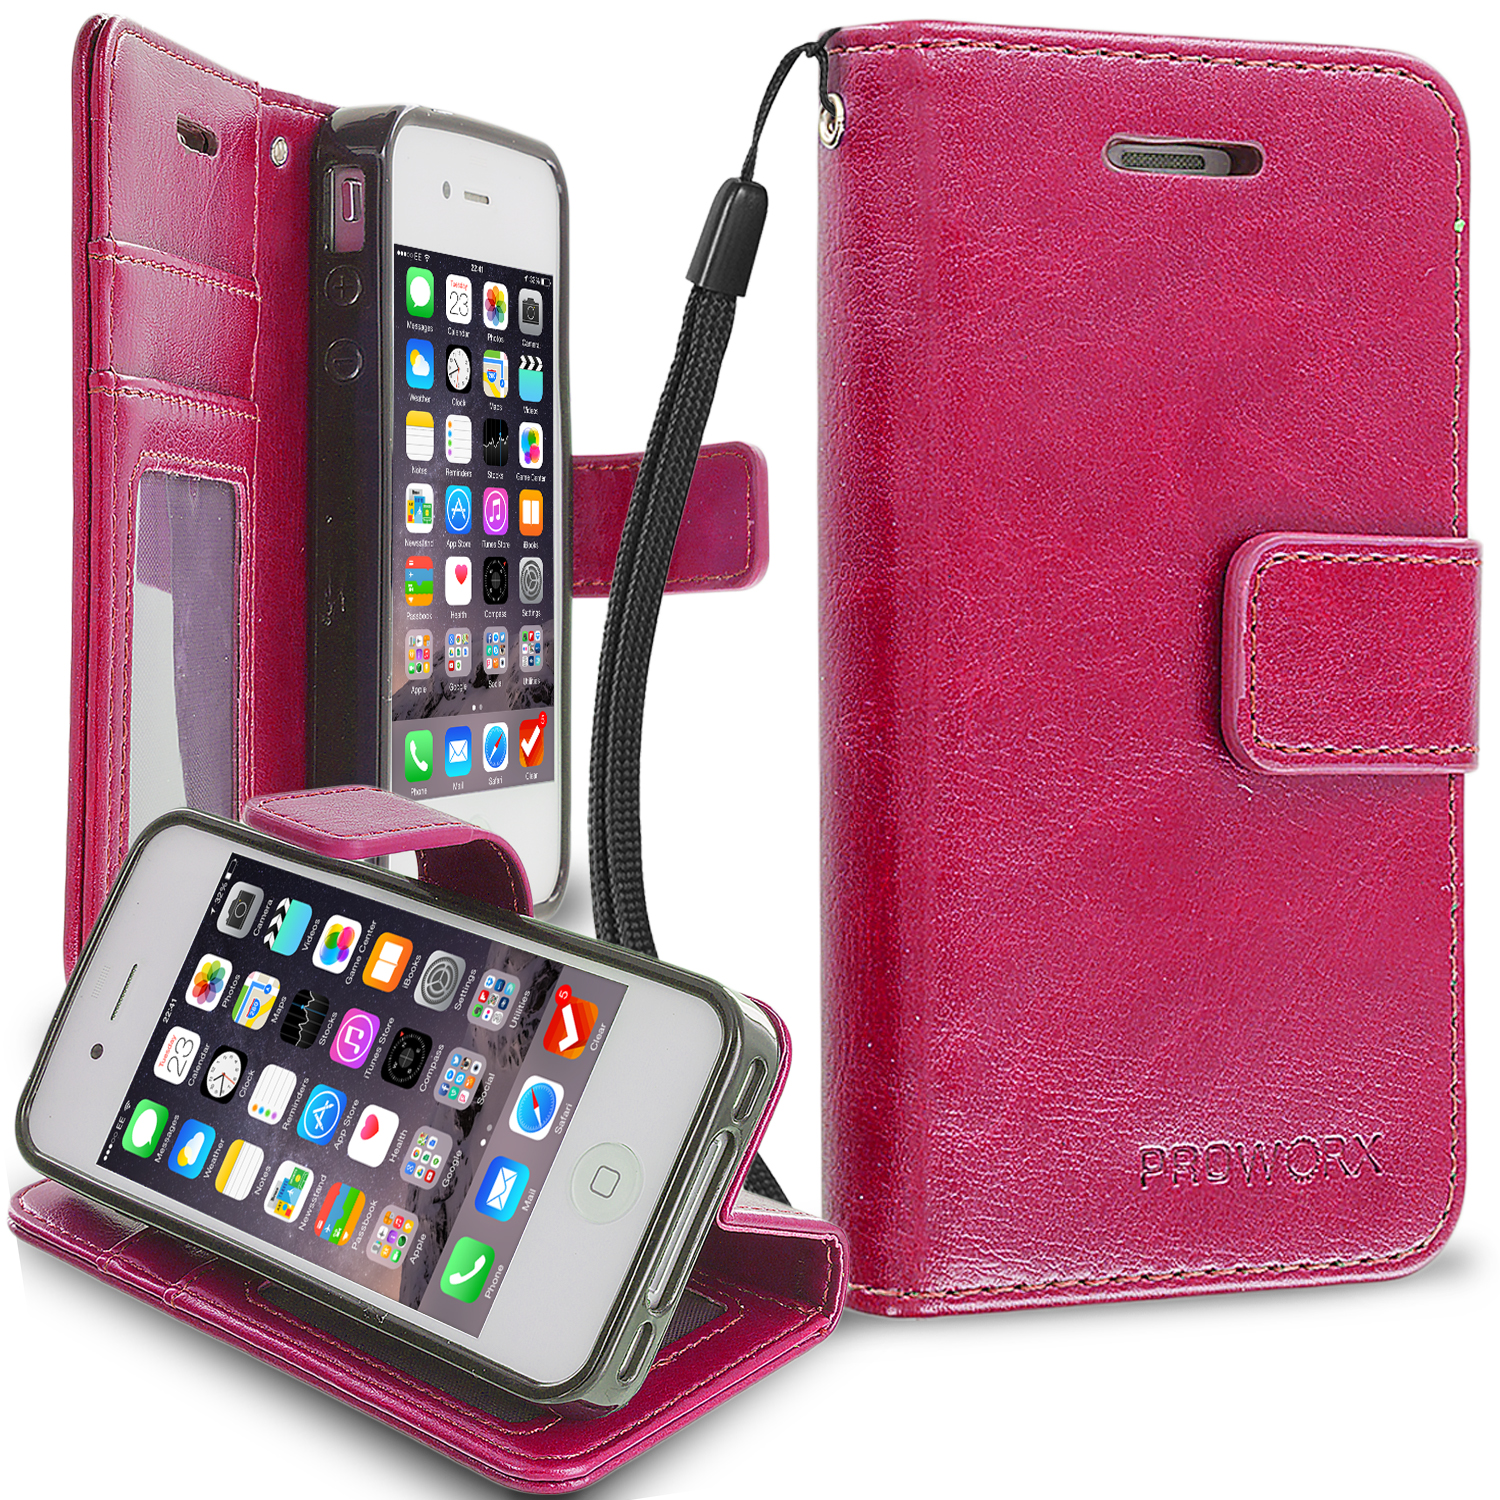 Apple iPhone 4 / 4S Hot Pink ProWorx Wallet Case Luxury PU Leather Case Cover With Card Slots & Stand